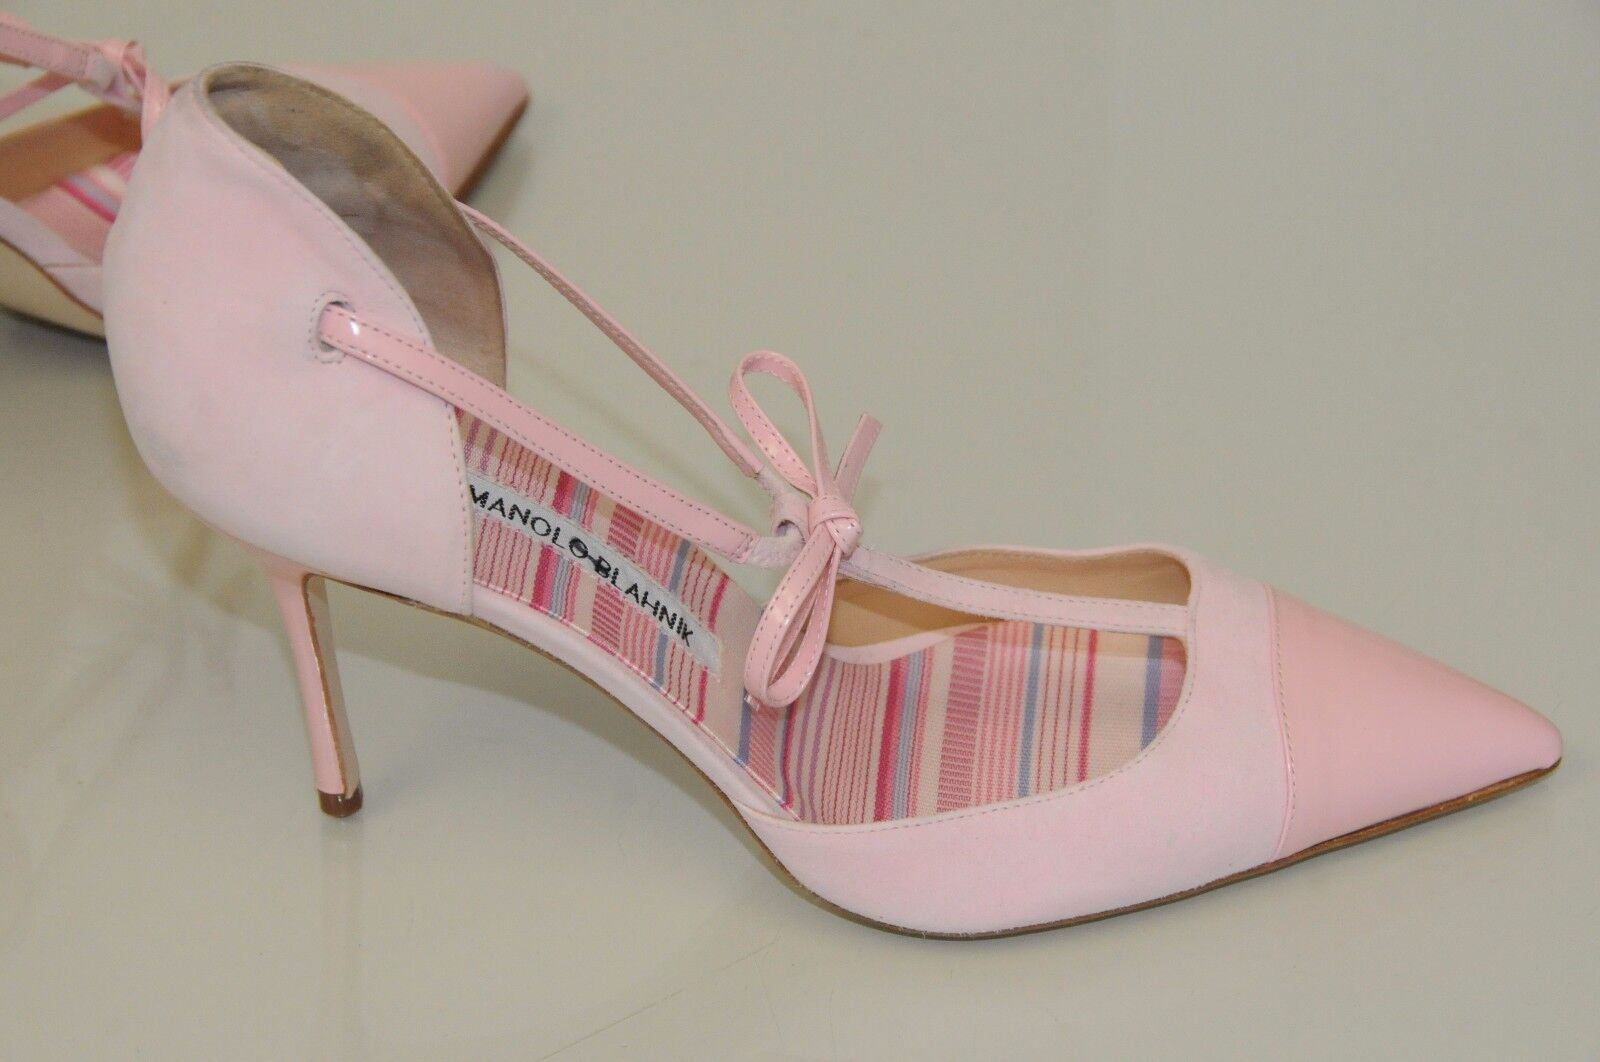 865 Rosa New Manolo Blahnik PARIGATAMA Pale Rosa 865 Leather T Strap schuhe 40.5 41 41.5 7de0e3